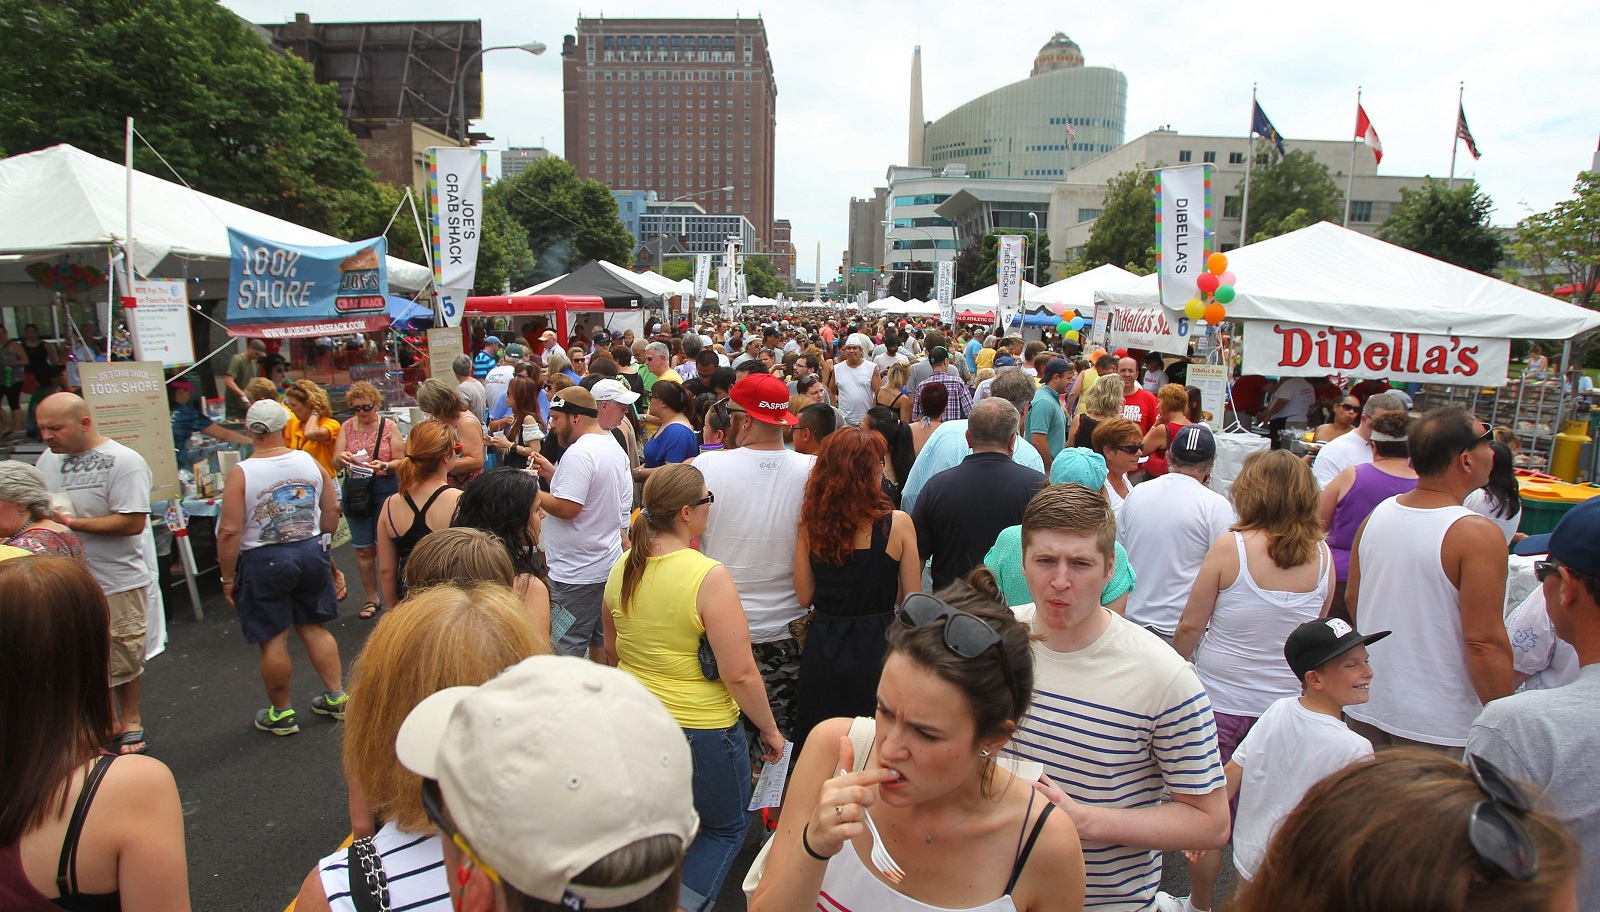 The Taste of Buffalo, which draws nearly 500,000 people annually, is among this week's iteration of The 10. (Mark Mulville/Buffalo News file photo)